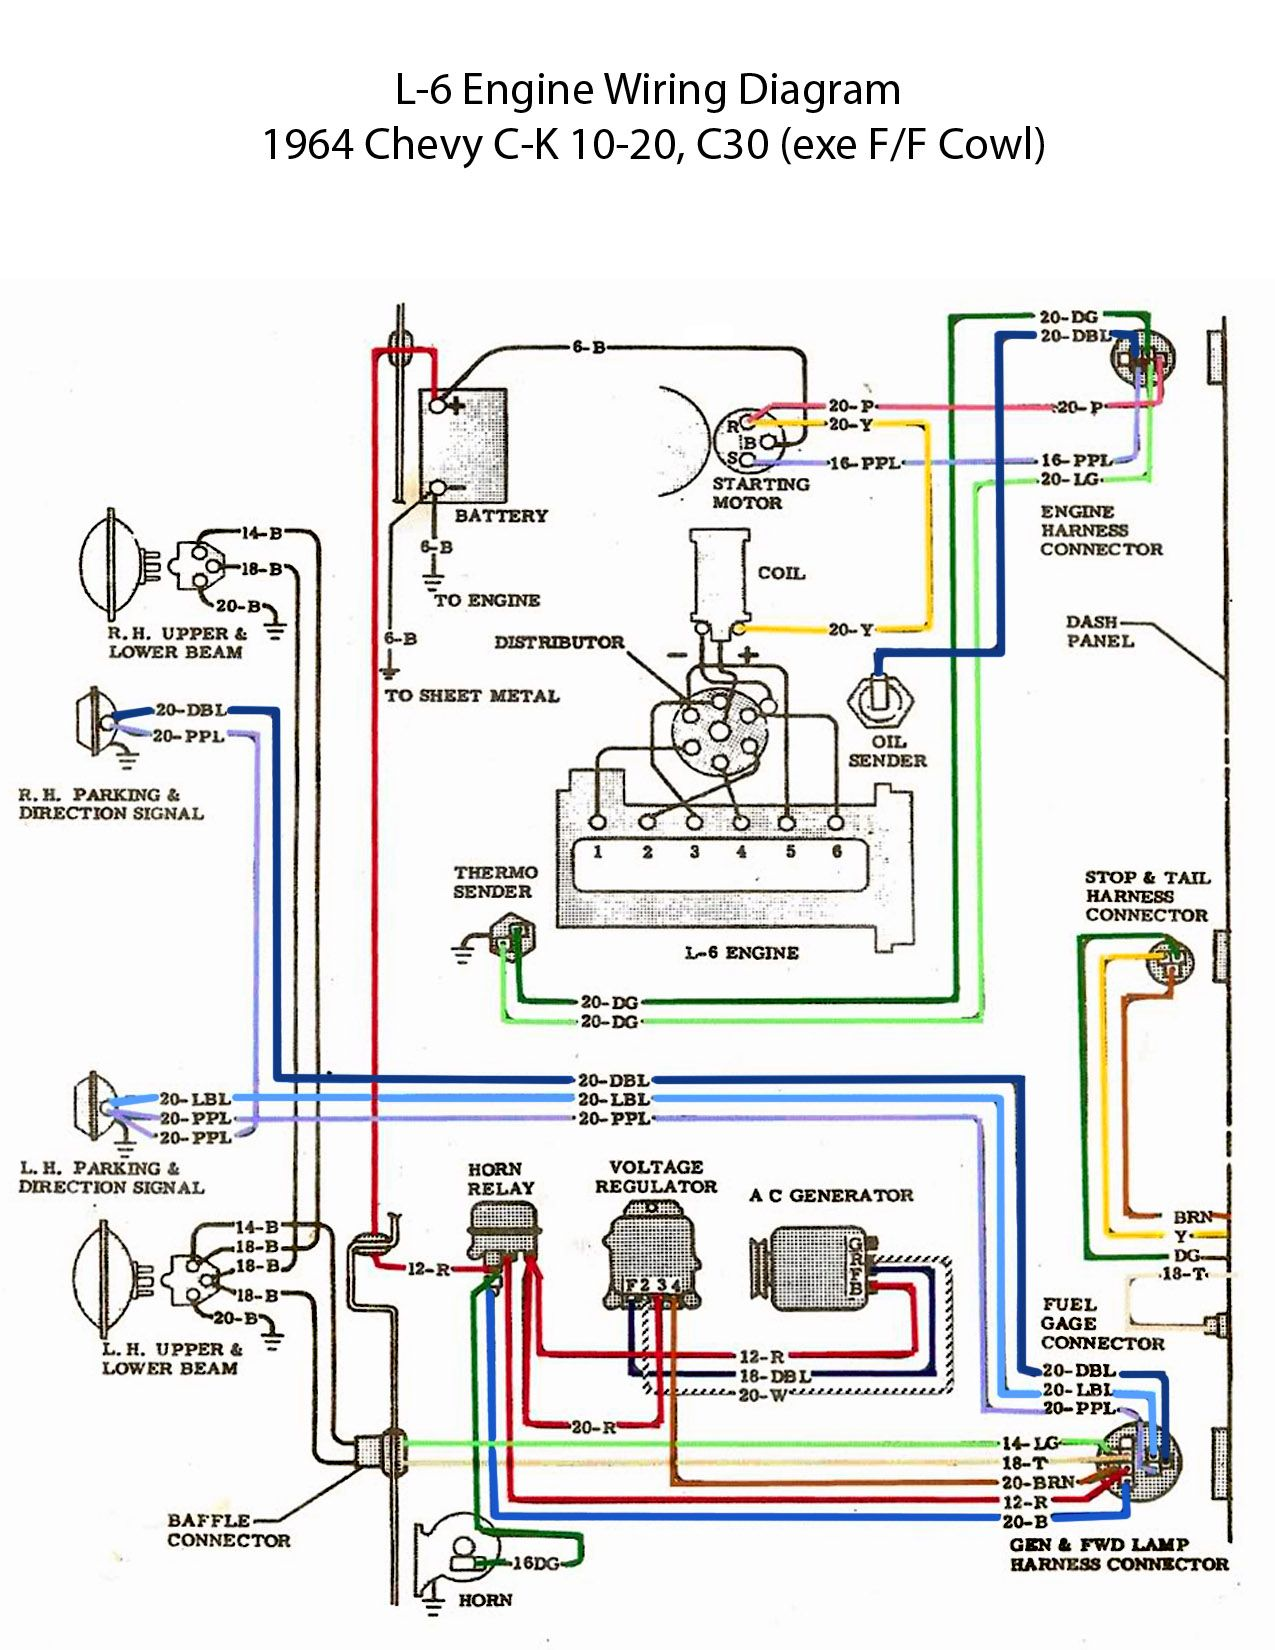 electric l 6 engine wiring diagram 60s chevy c10 wiring rh pinterest com 1979 Chevy Truck Wiring Diagram 1987 Chevy Truck Wiring Diagram